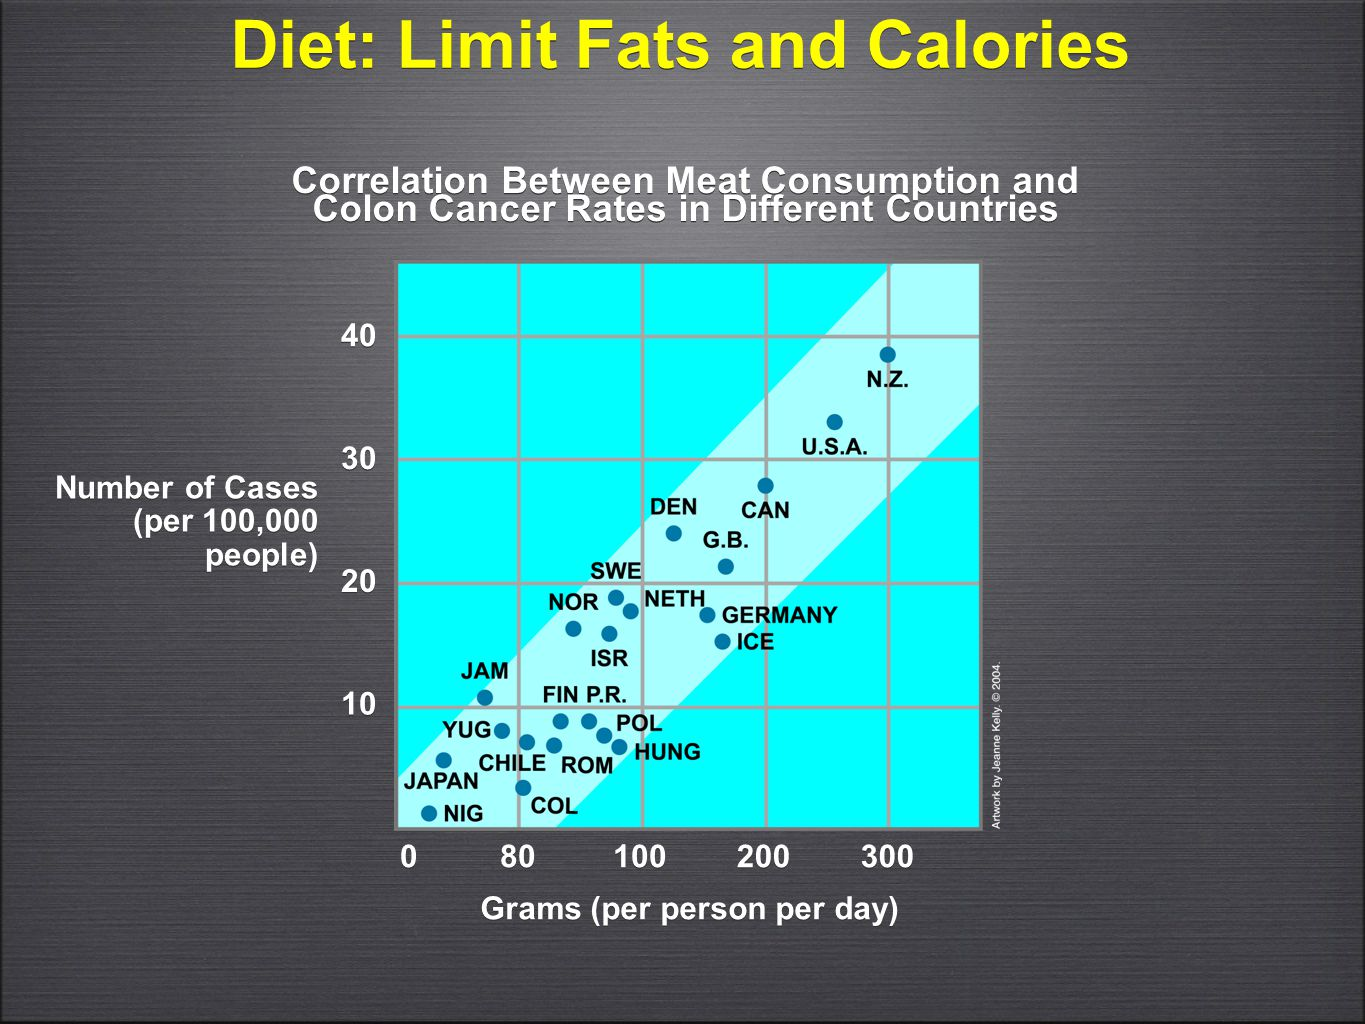 Diet: Limit Fats and Calories Grams (per person per day)